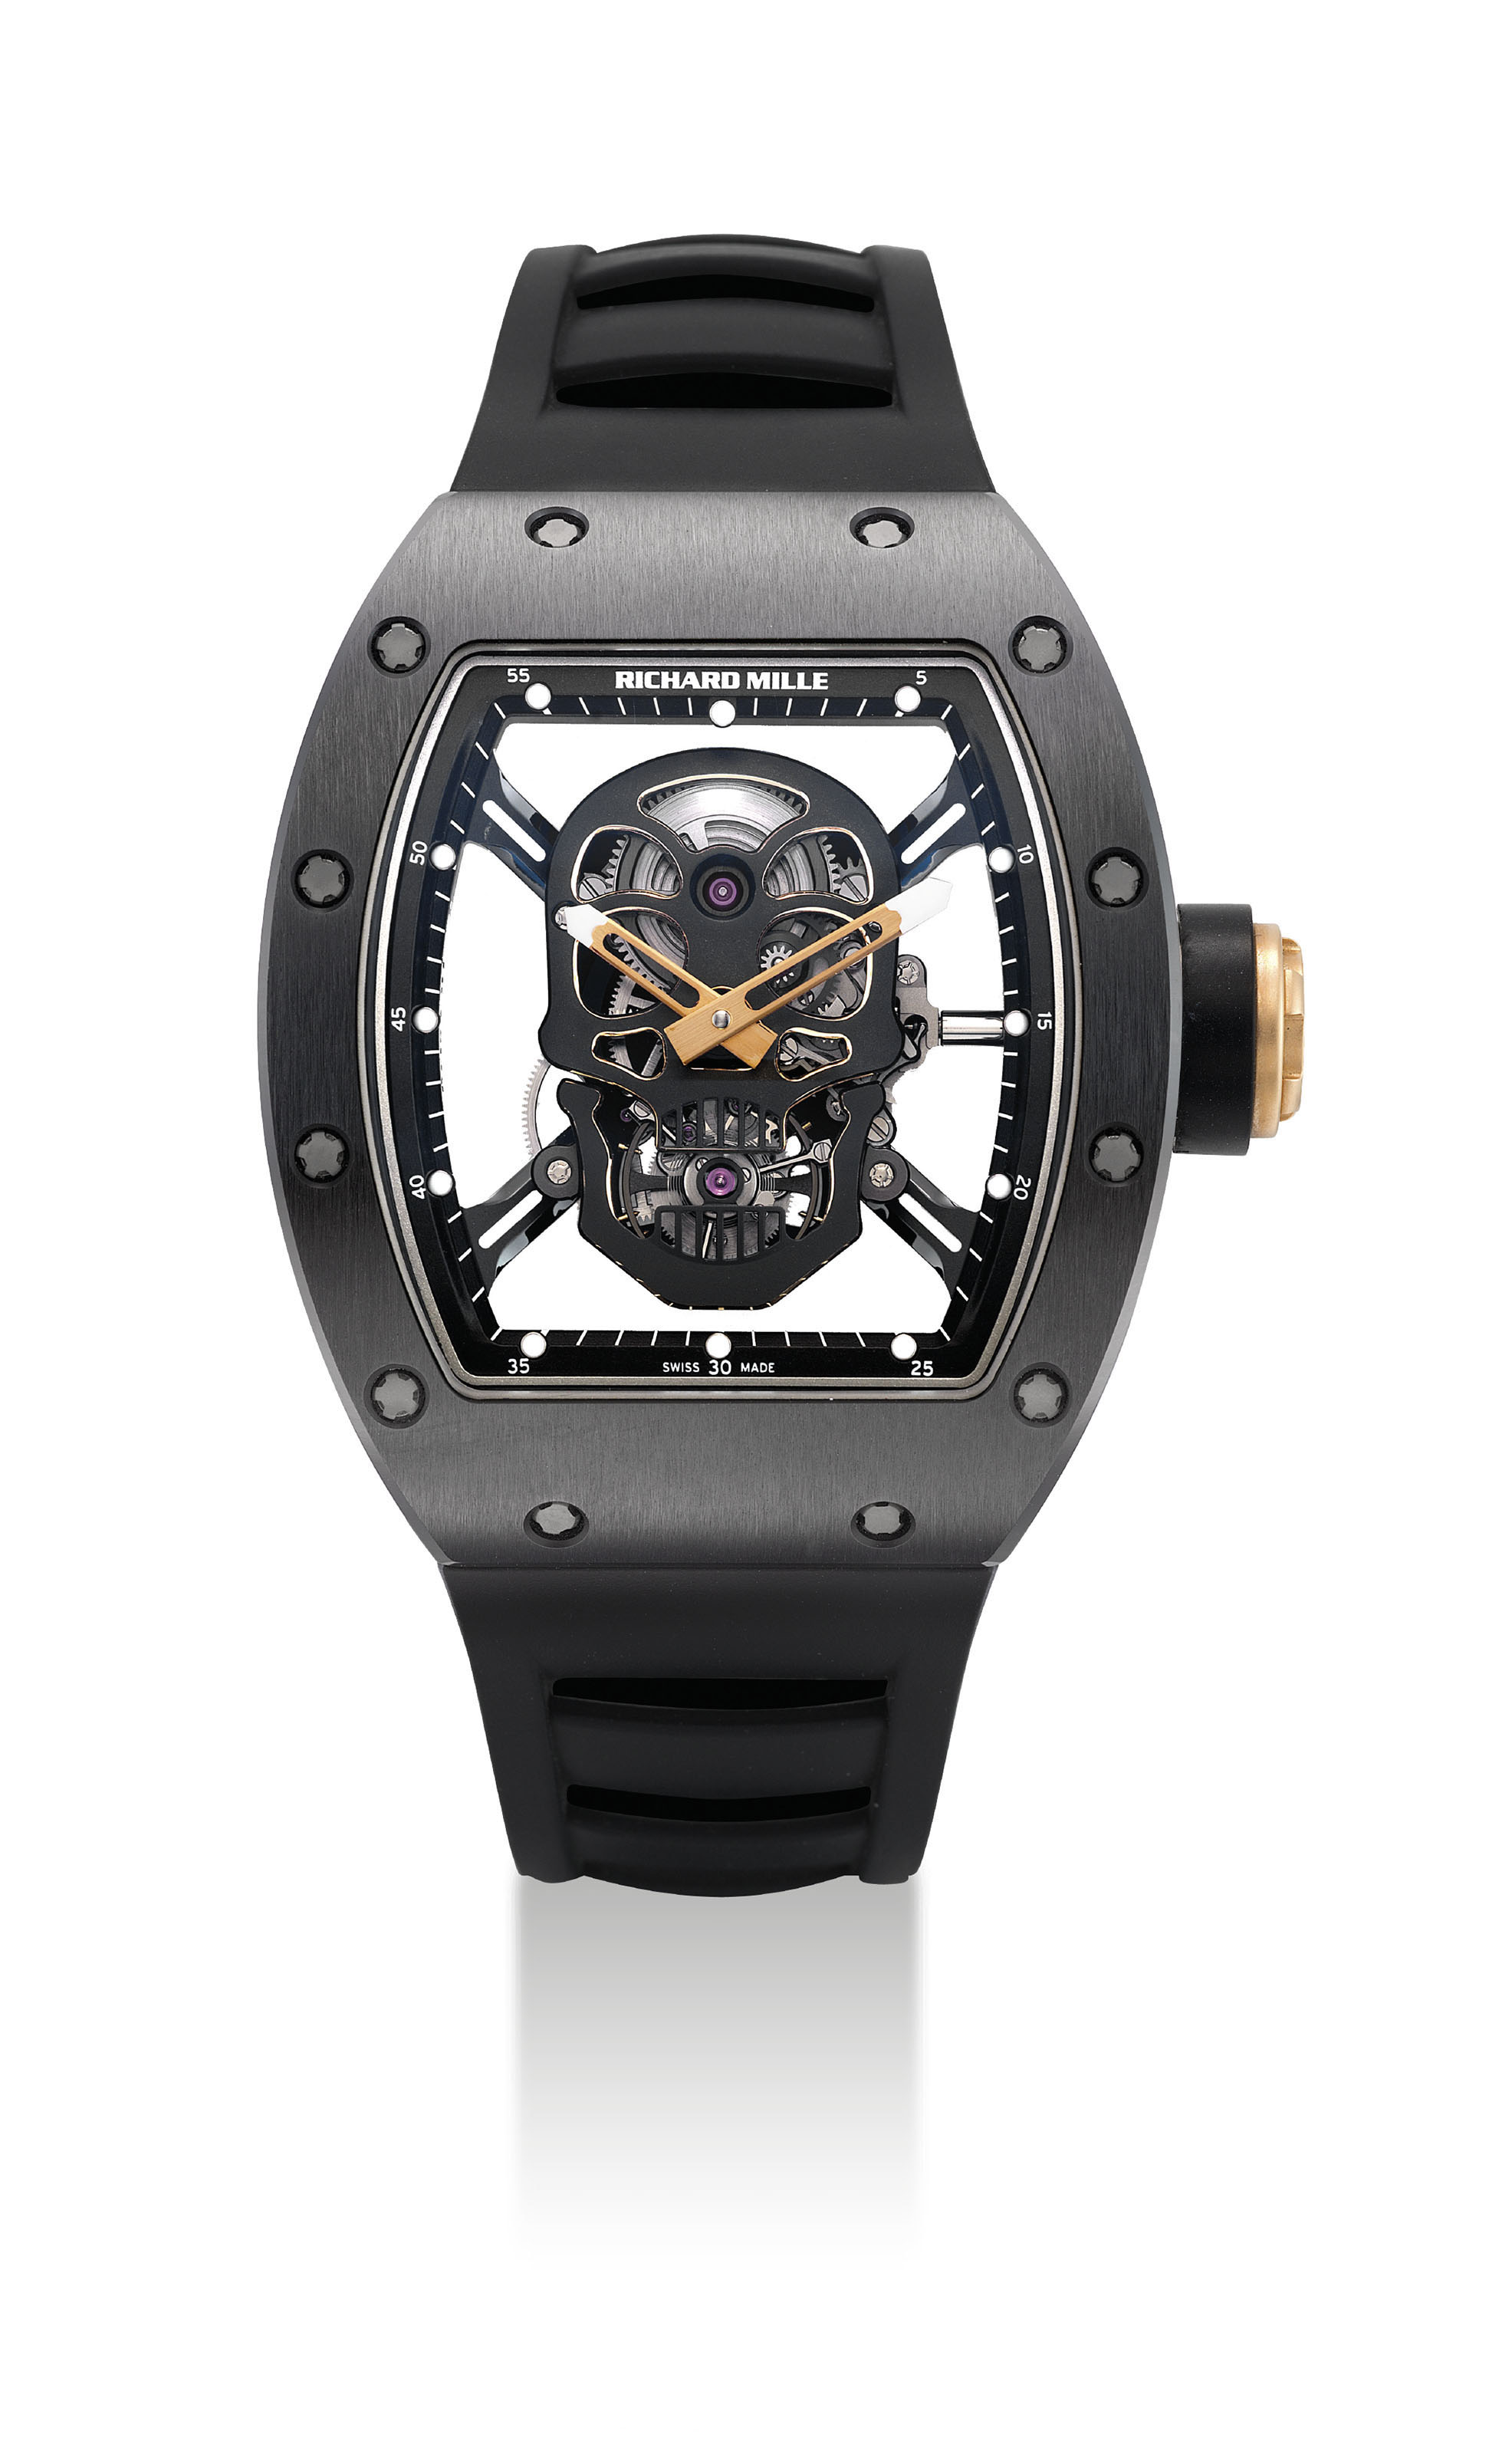 RICHARD MILLE. AN IMPRESSIVE AND EXTREMELY RARE LIMITED EDITION BLACK COATED TITANIUM, CERAMIC, CARBON AND ZIRCONIUM TONNEAU-SHAPED SKELETONISED TOURBILLON WRISTWATCH